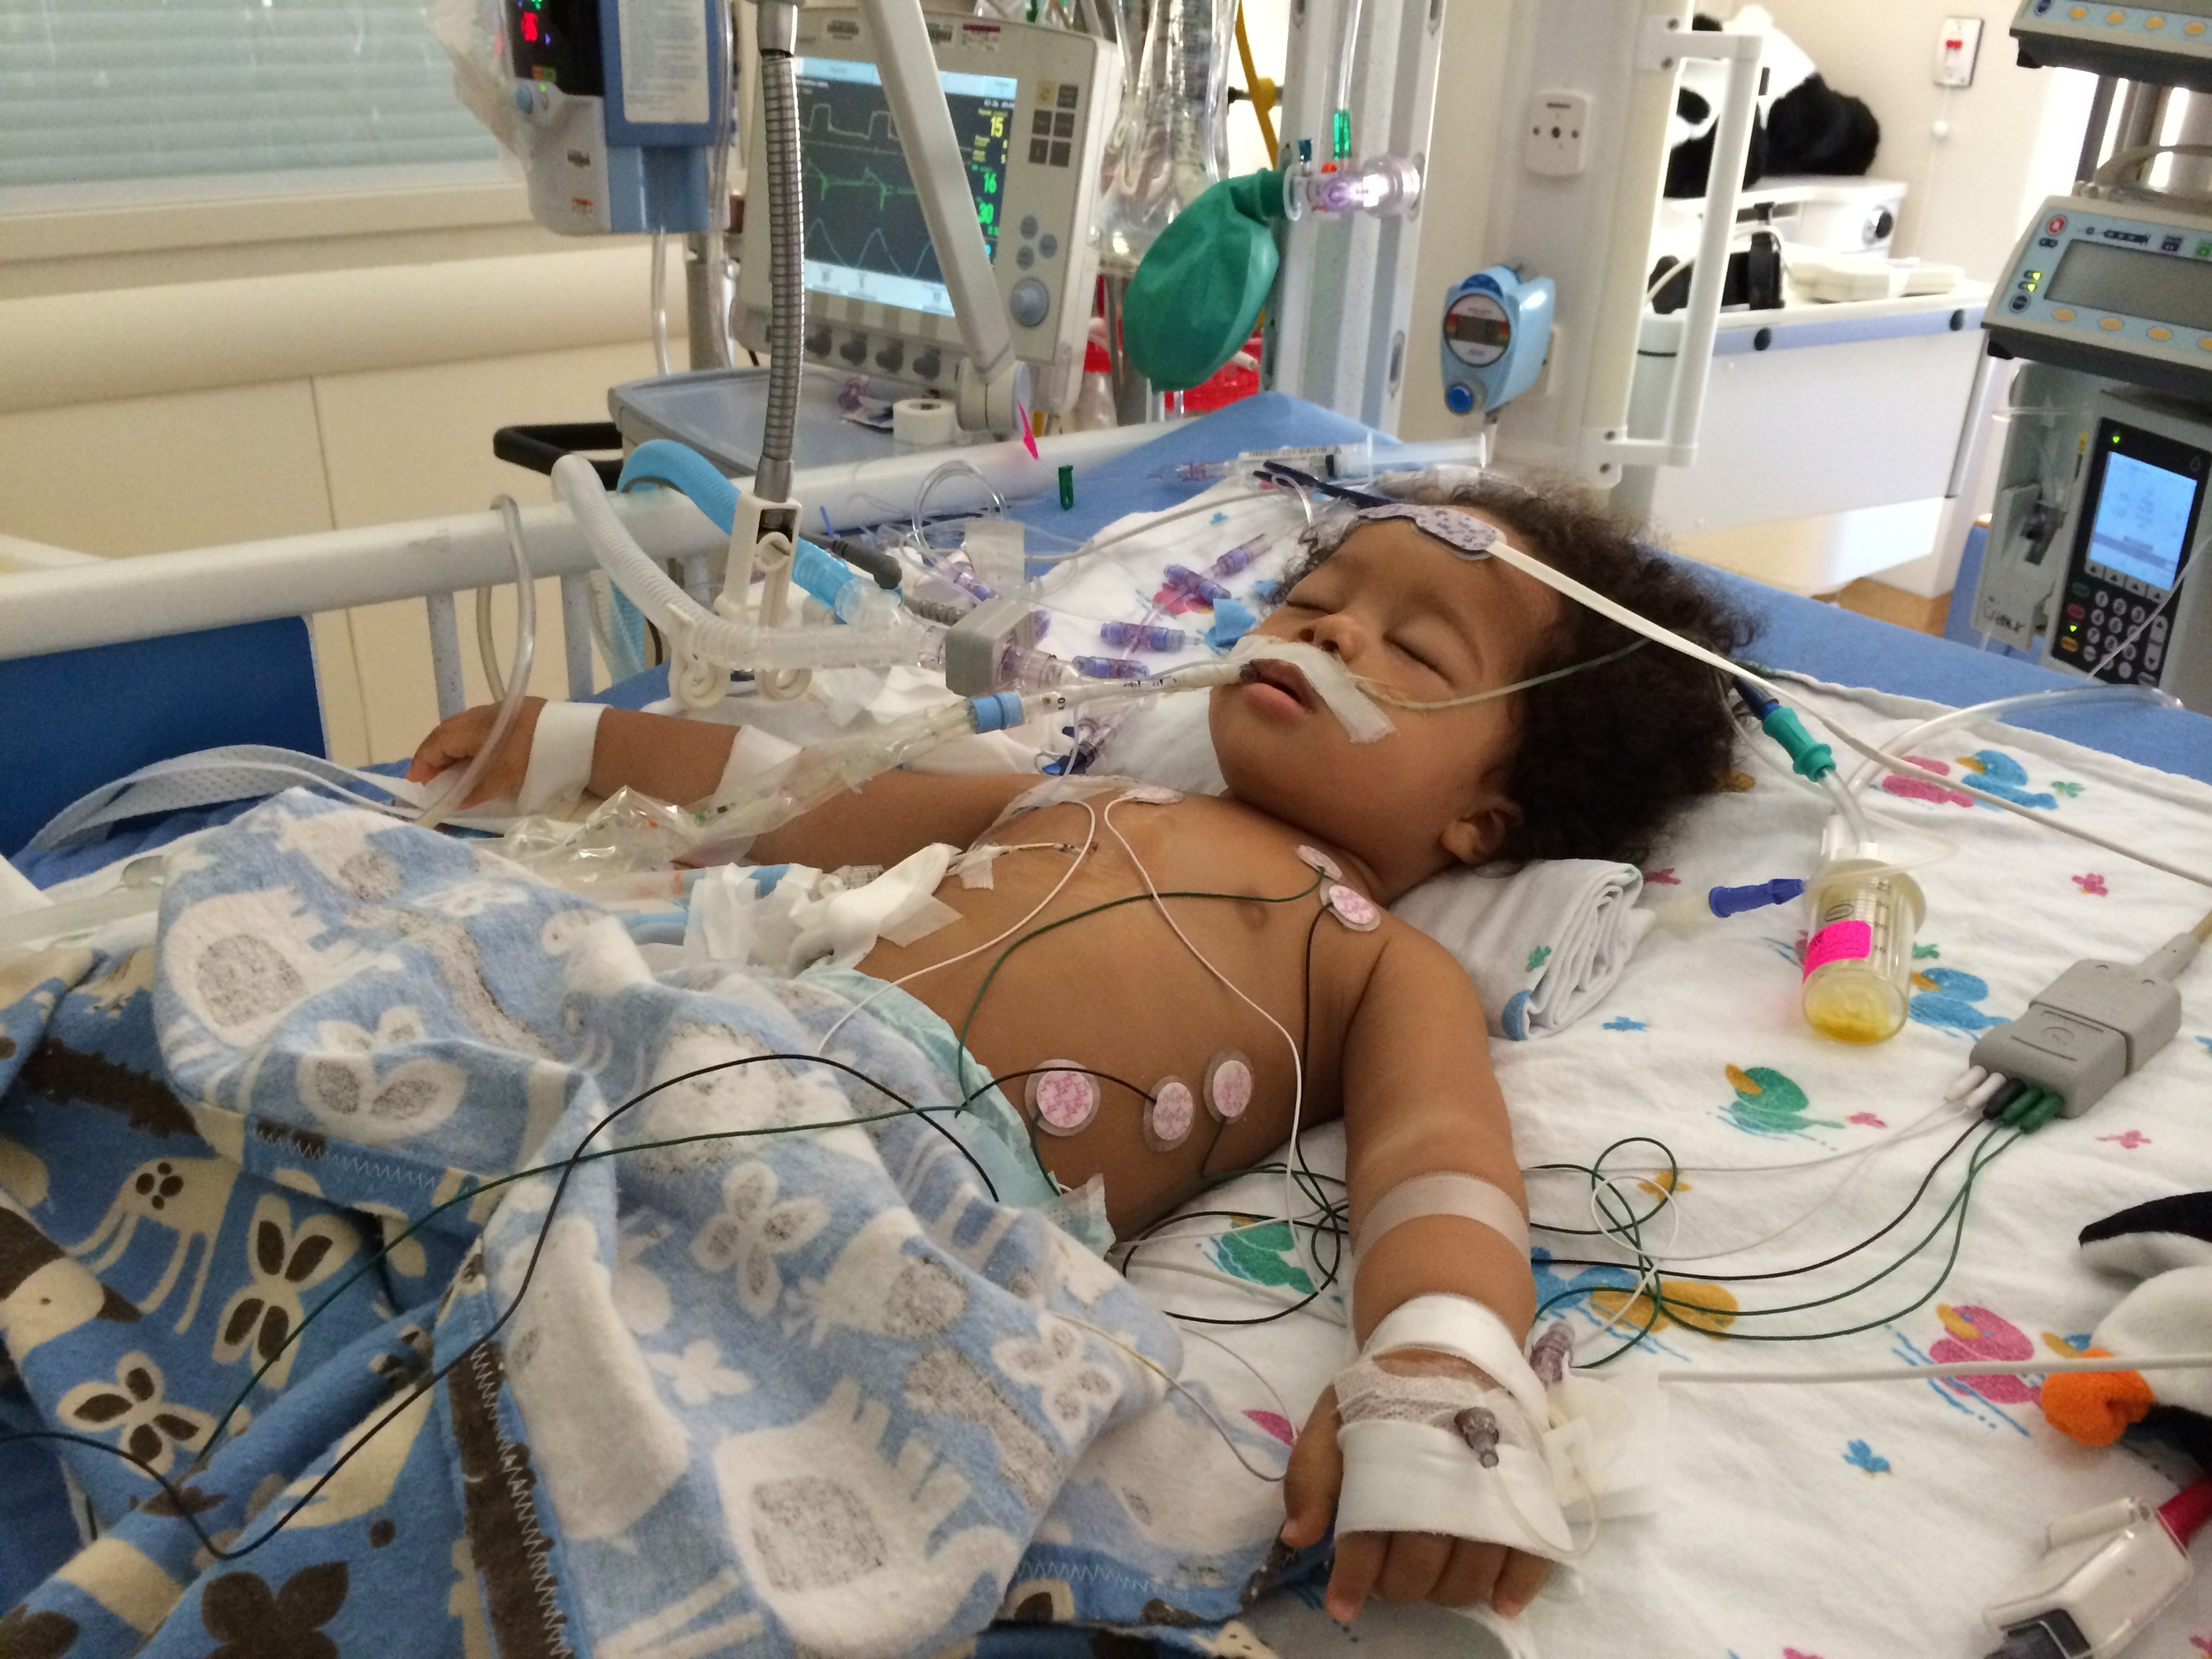 Elliott: Day of diagnosis: July 24, 2014 (intubated, chest tube (to drain fluid around lungs), pericardial drain (to drain fluid around heart)...fully monitored.  While this photo is difficult to look at, seeing him struggle to breathe was much worse.